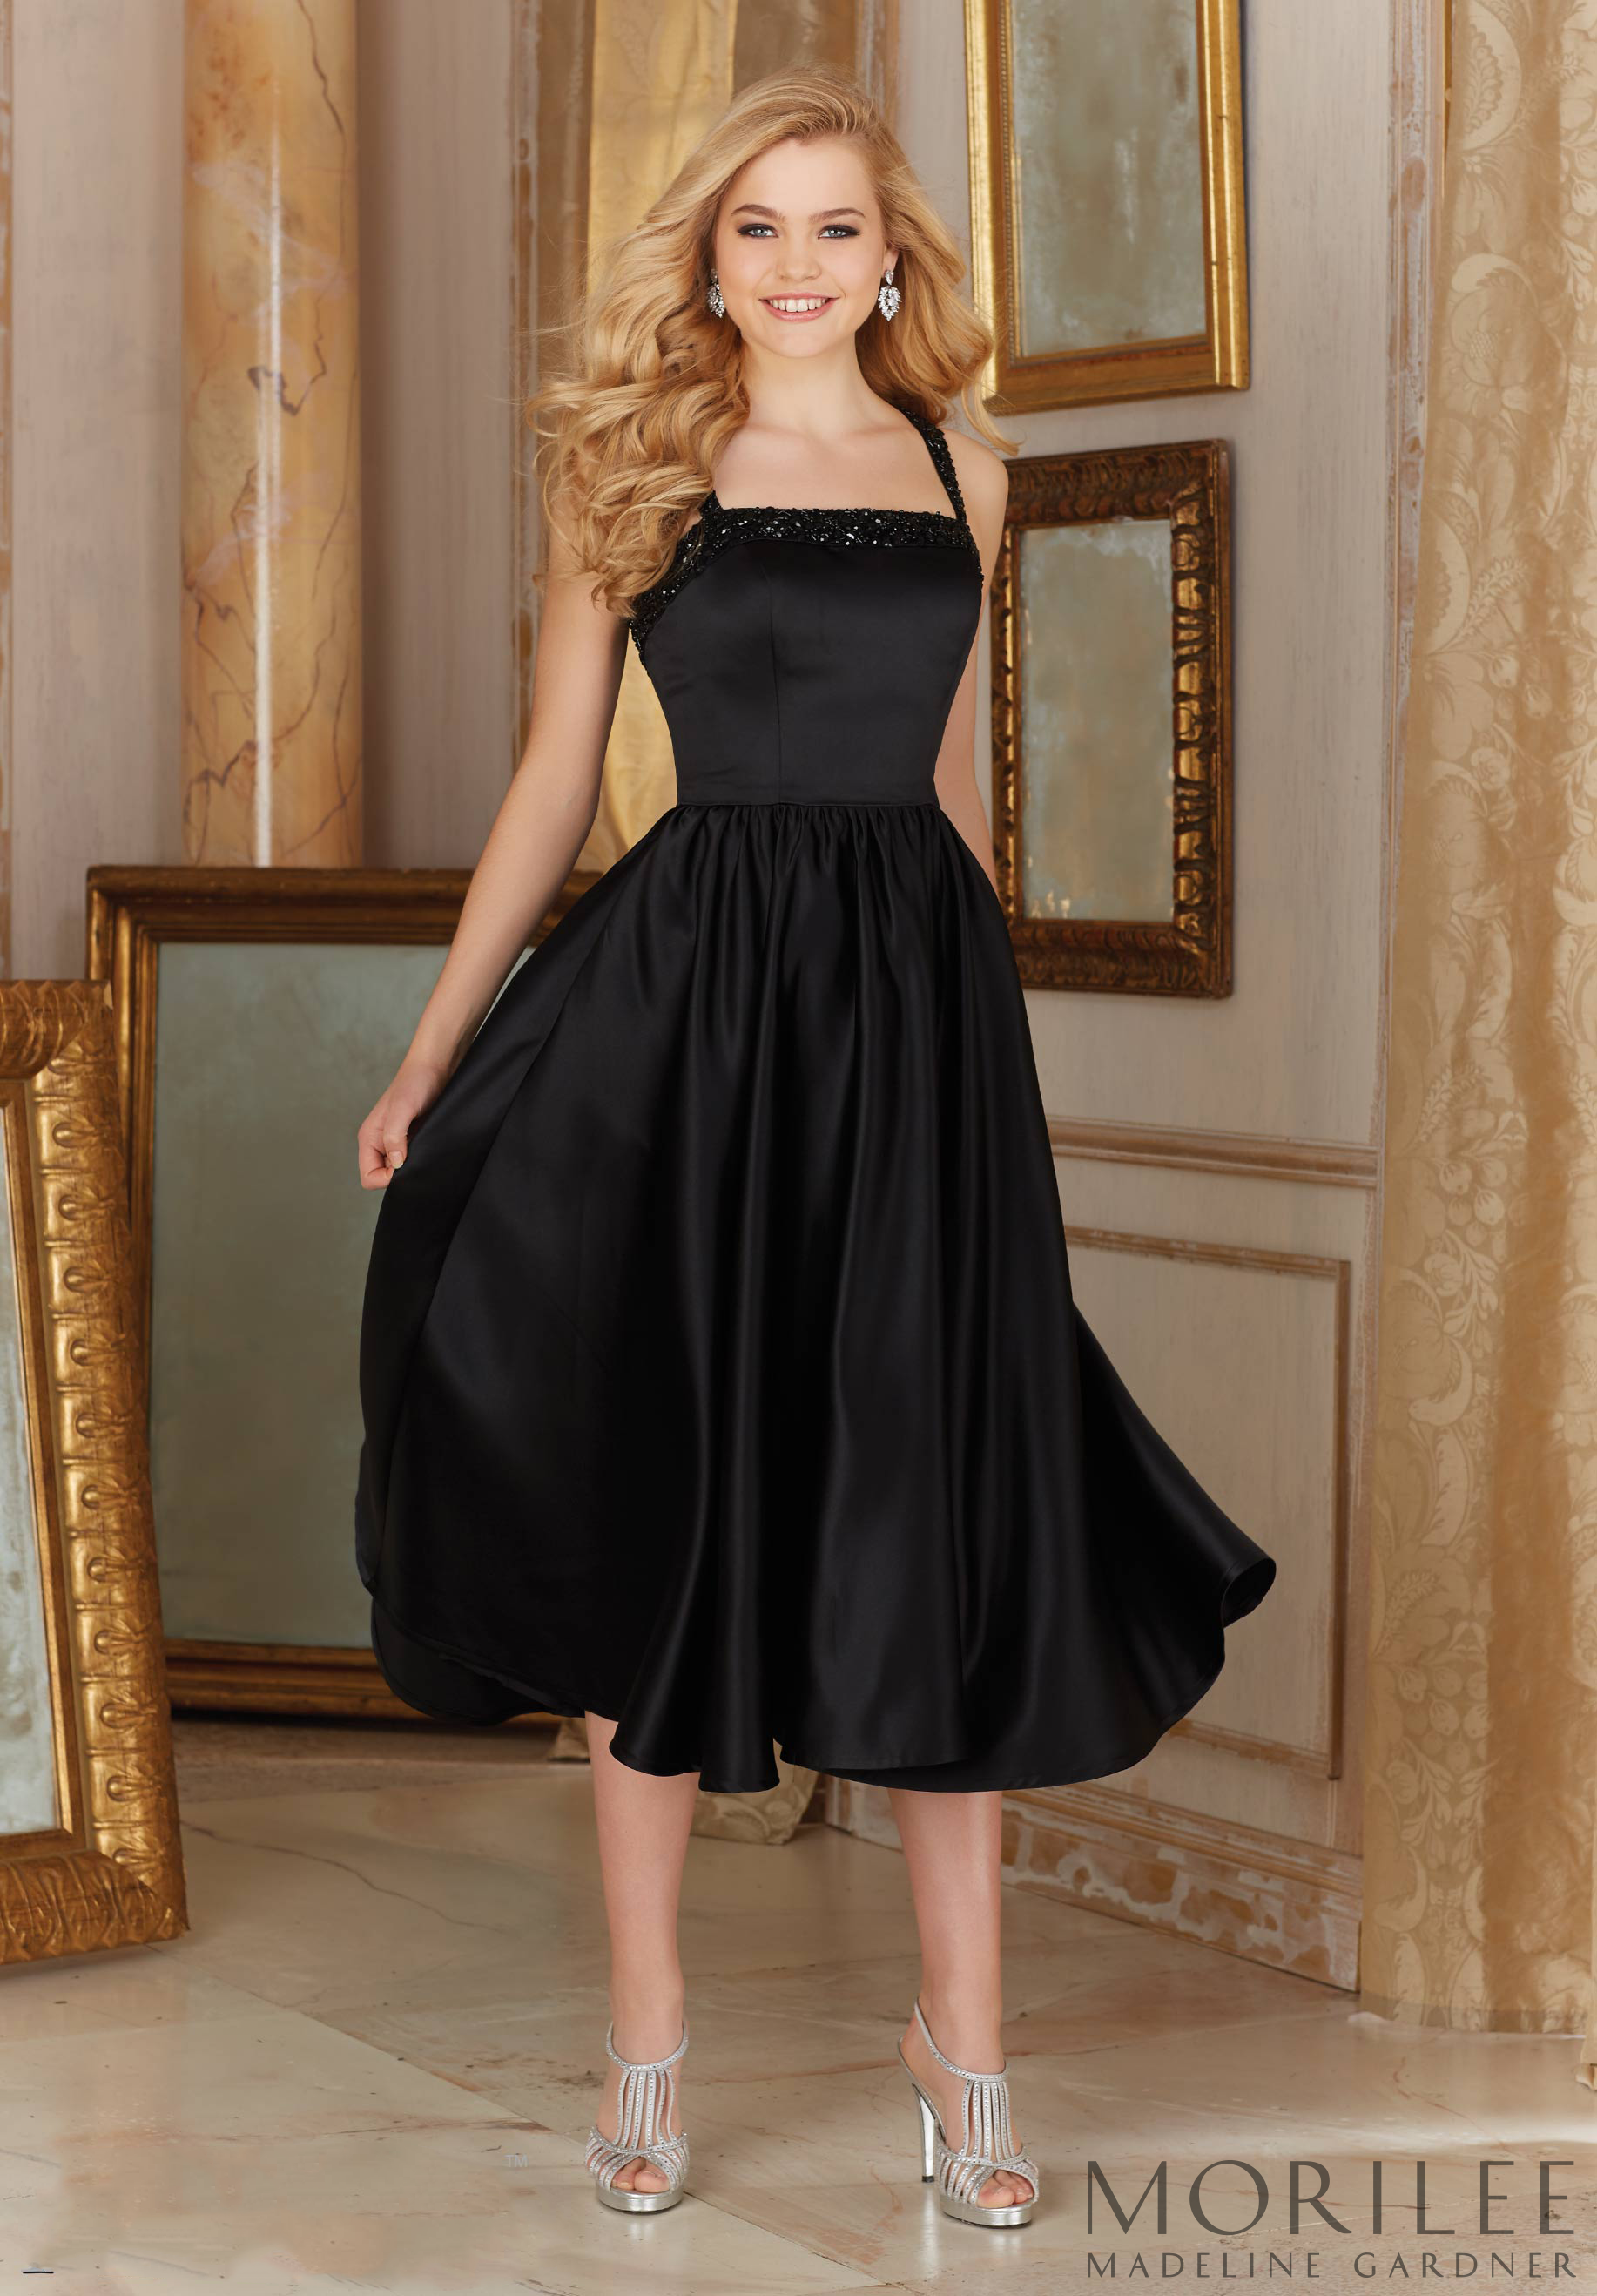 Morilee Satin With Beading Bridesmaid Dress In Black Midi Or Tea Length Available In Bridesmaid Dresses 2017 Mori Lee Bridesmaid Dresses Bridesmaid Dresses [ 2636 x 1834 Pixel ]